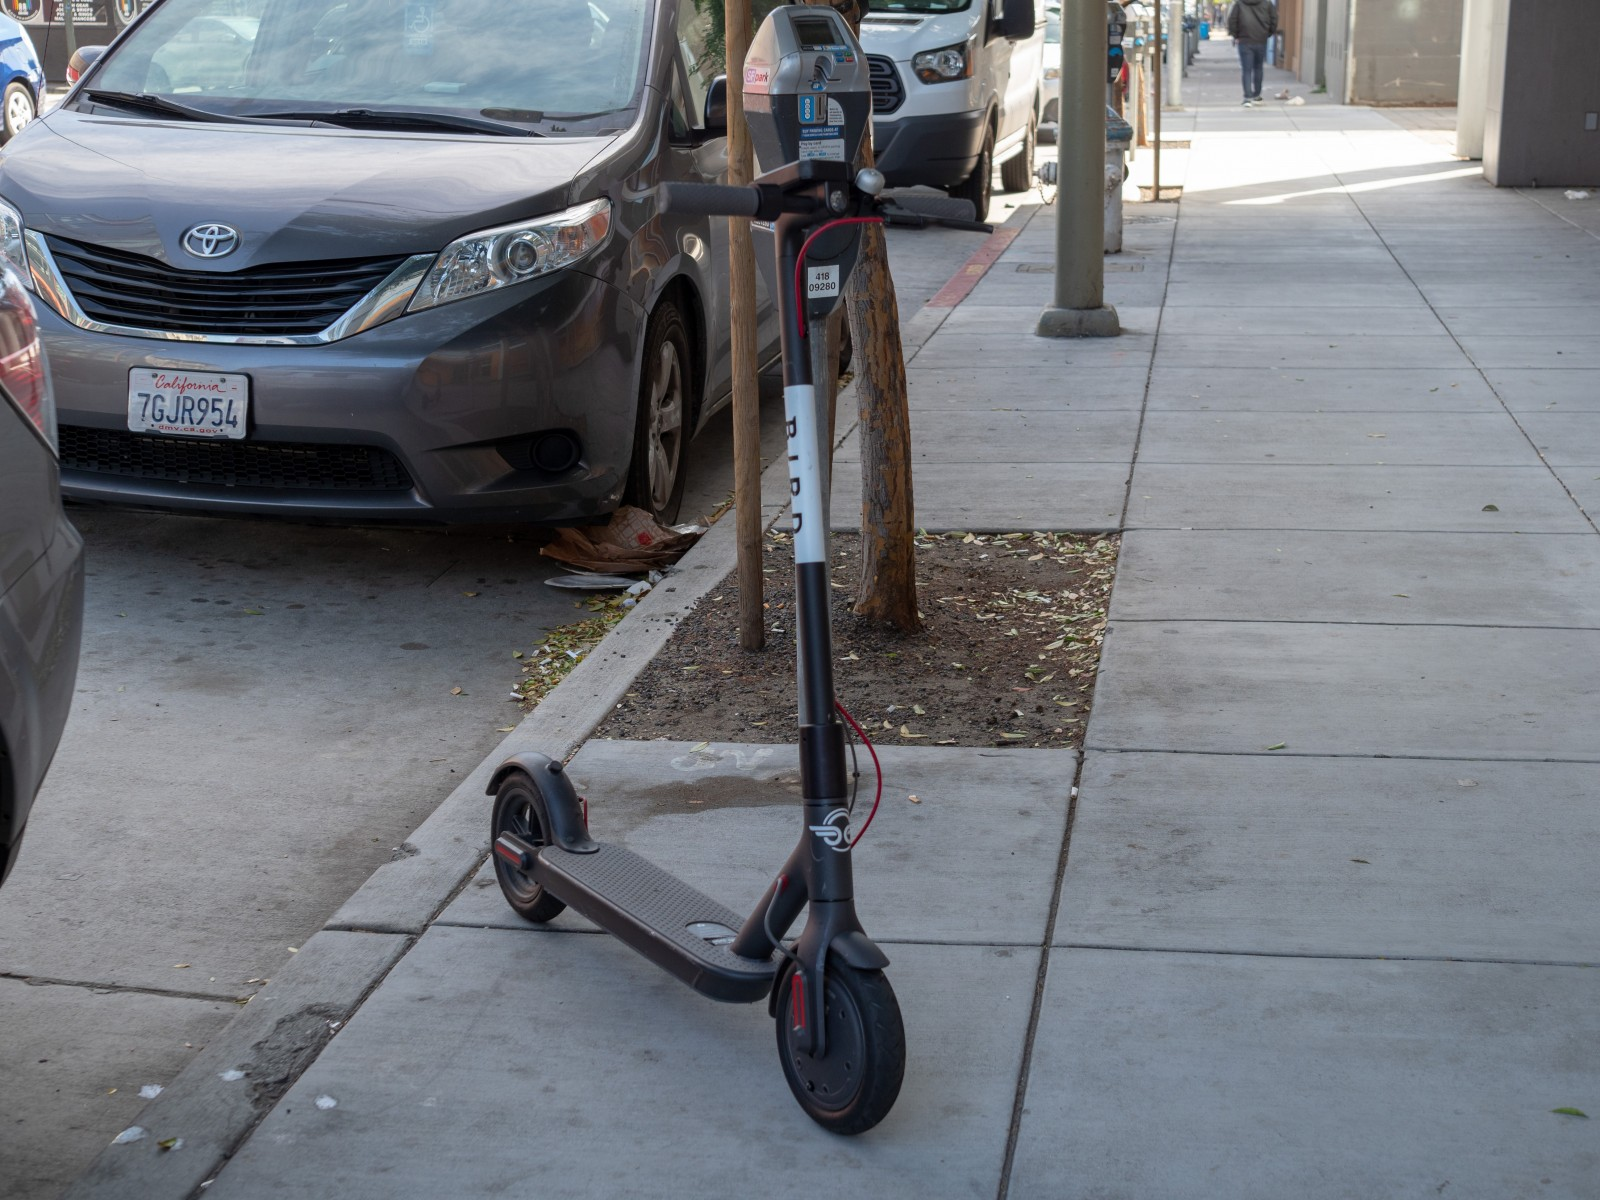 Electric scooters are good transportation alternatives if users are careful and wear protective gear. Photo by Getty Images.